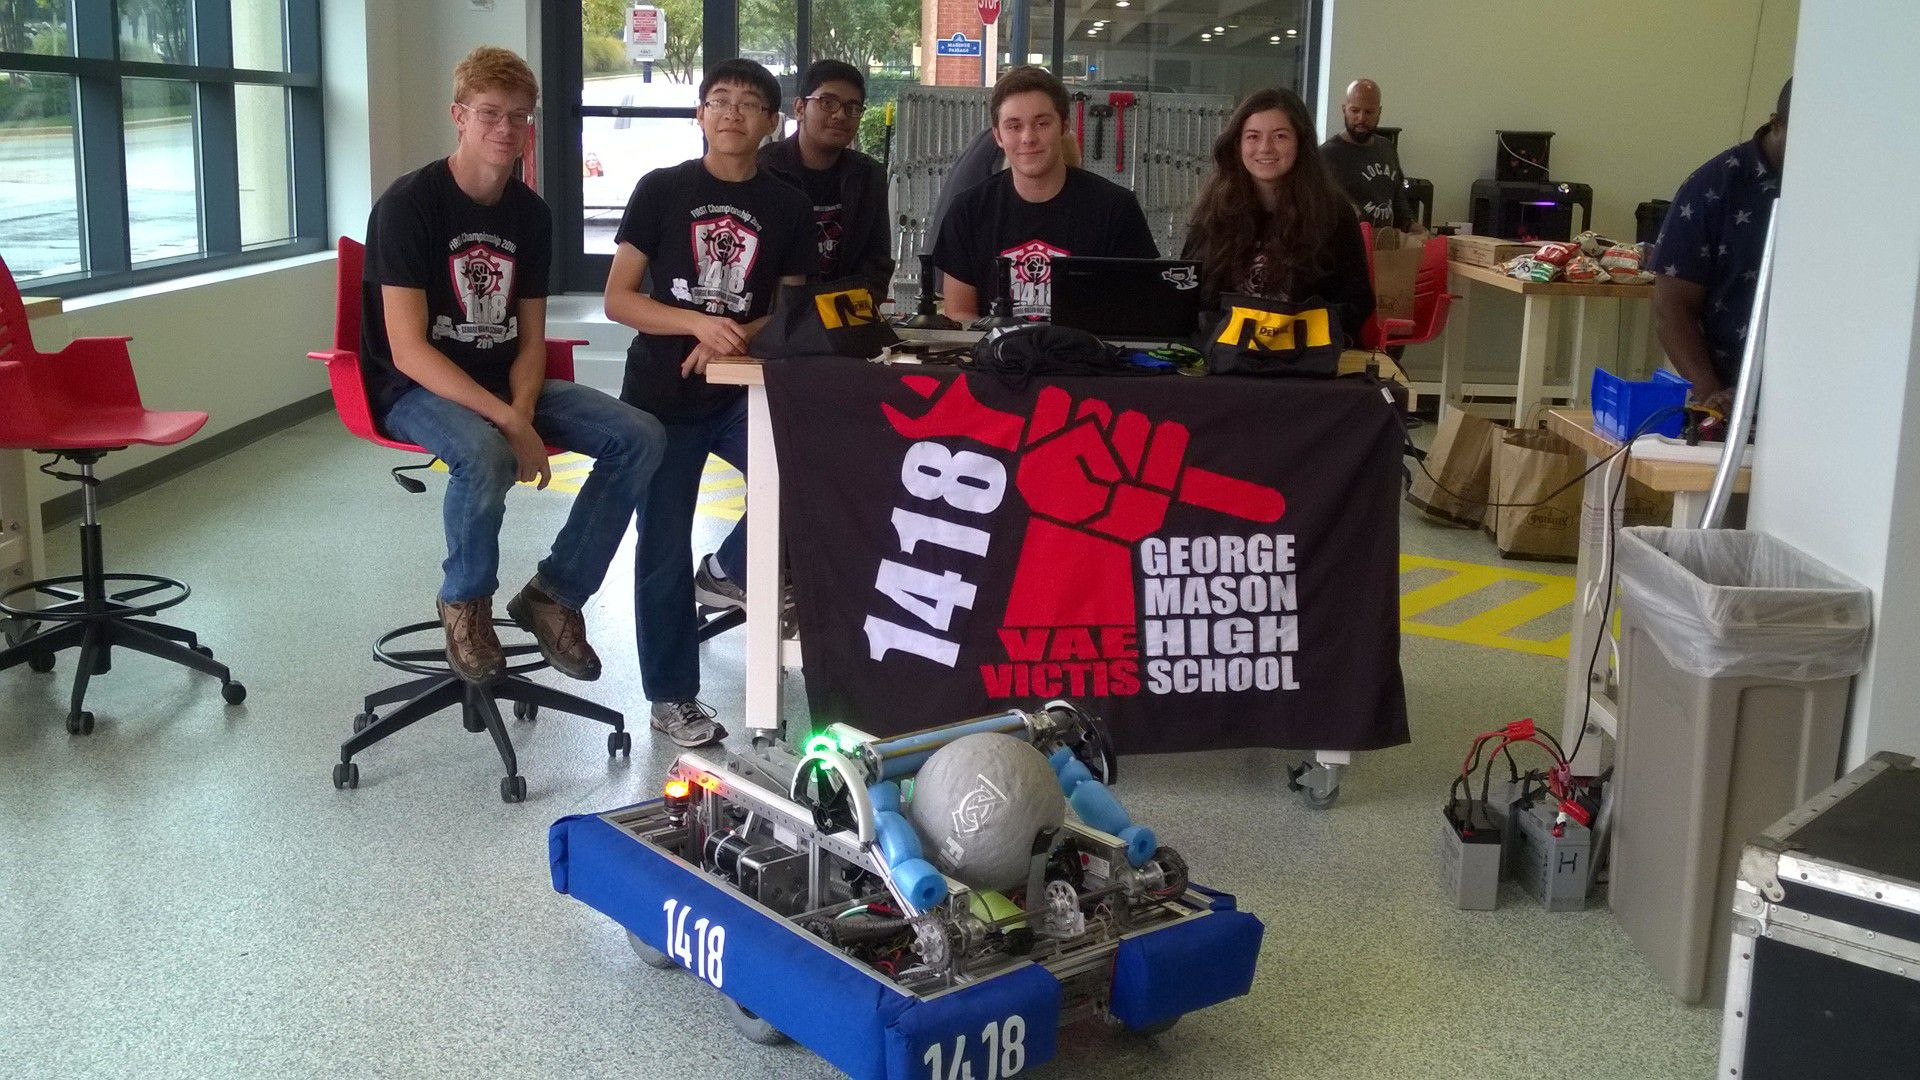 The team posing behind a 1418 banner with the robot in front.